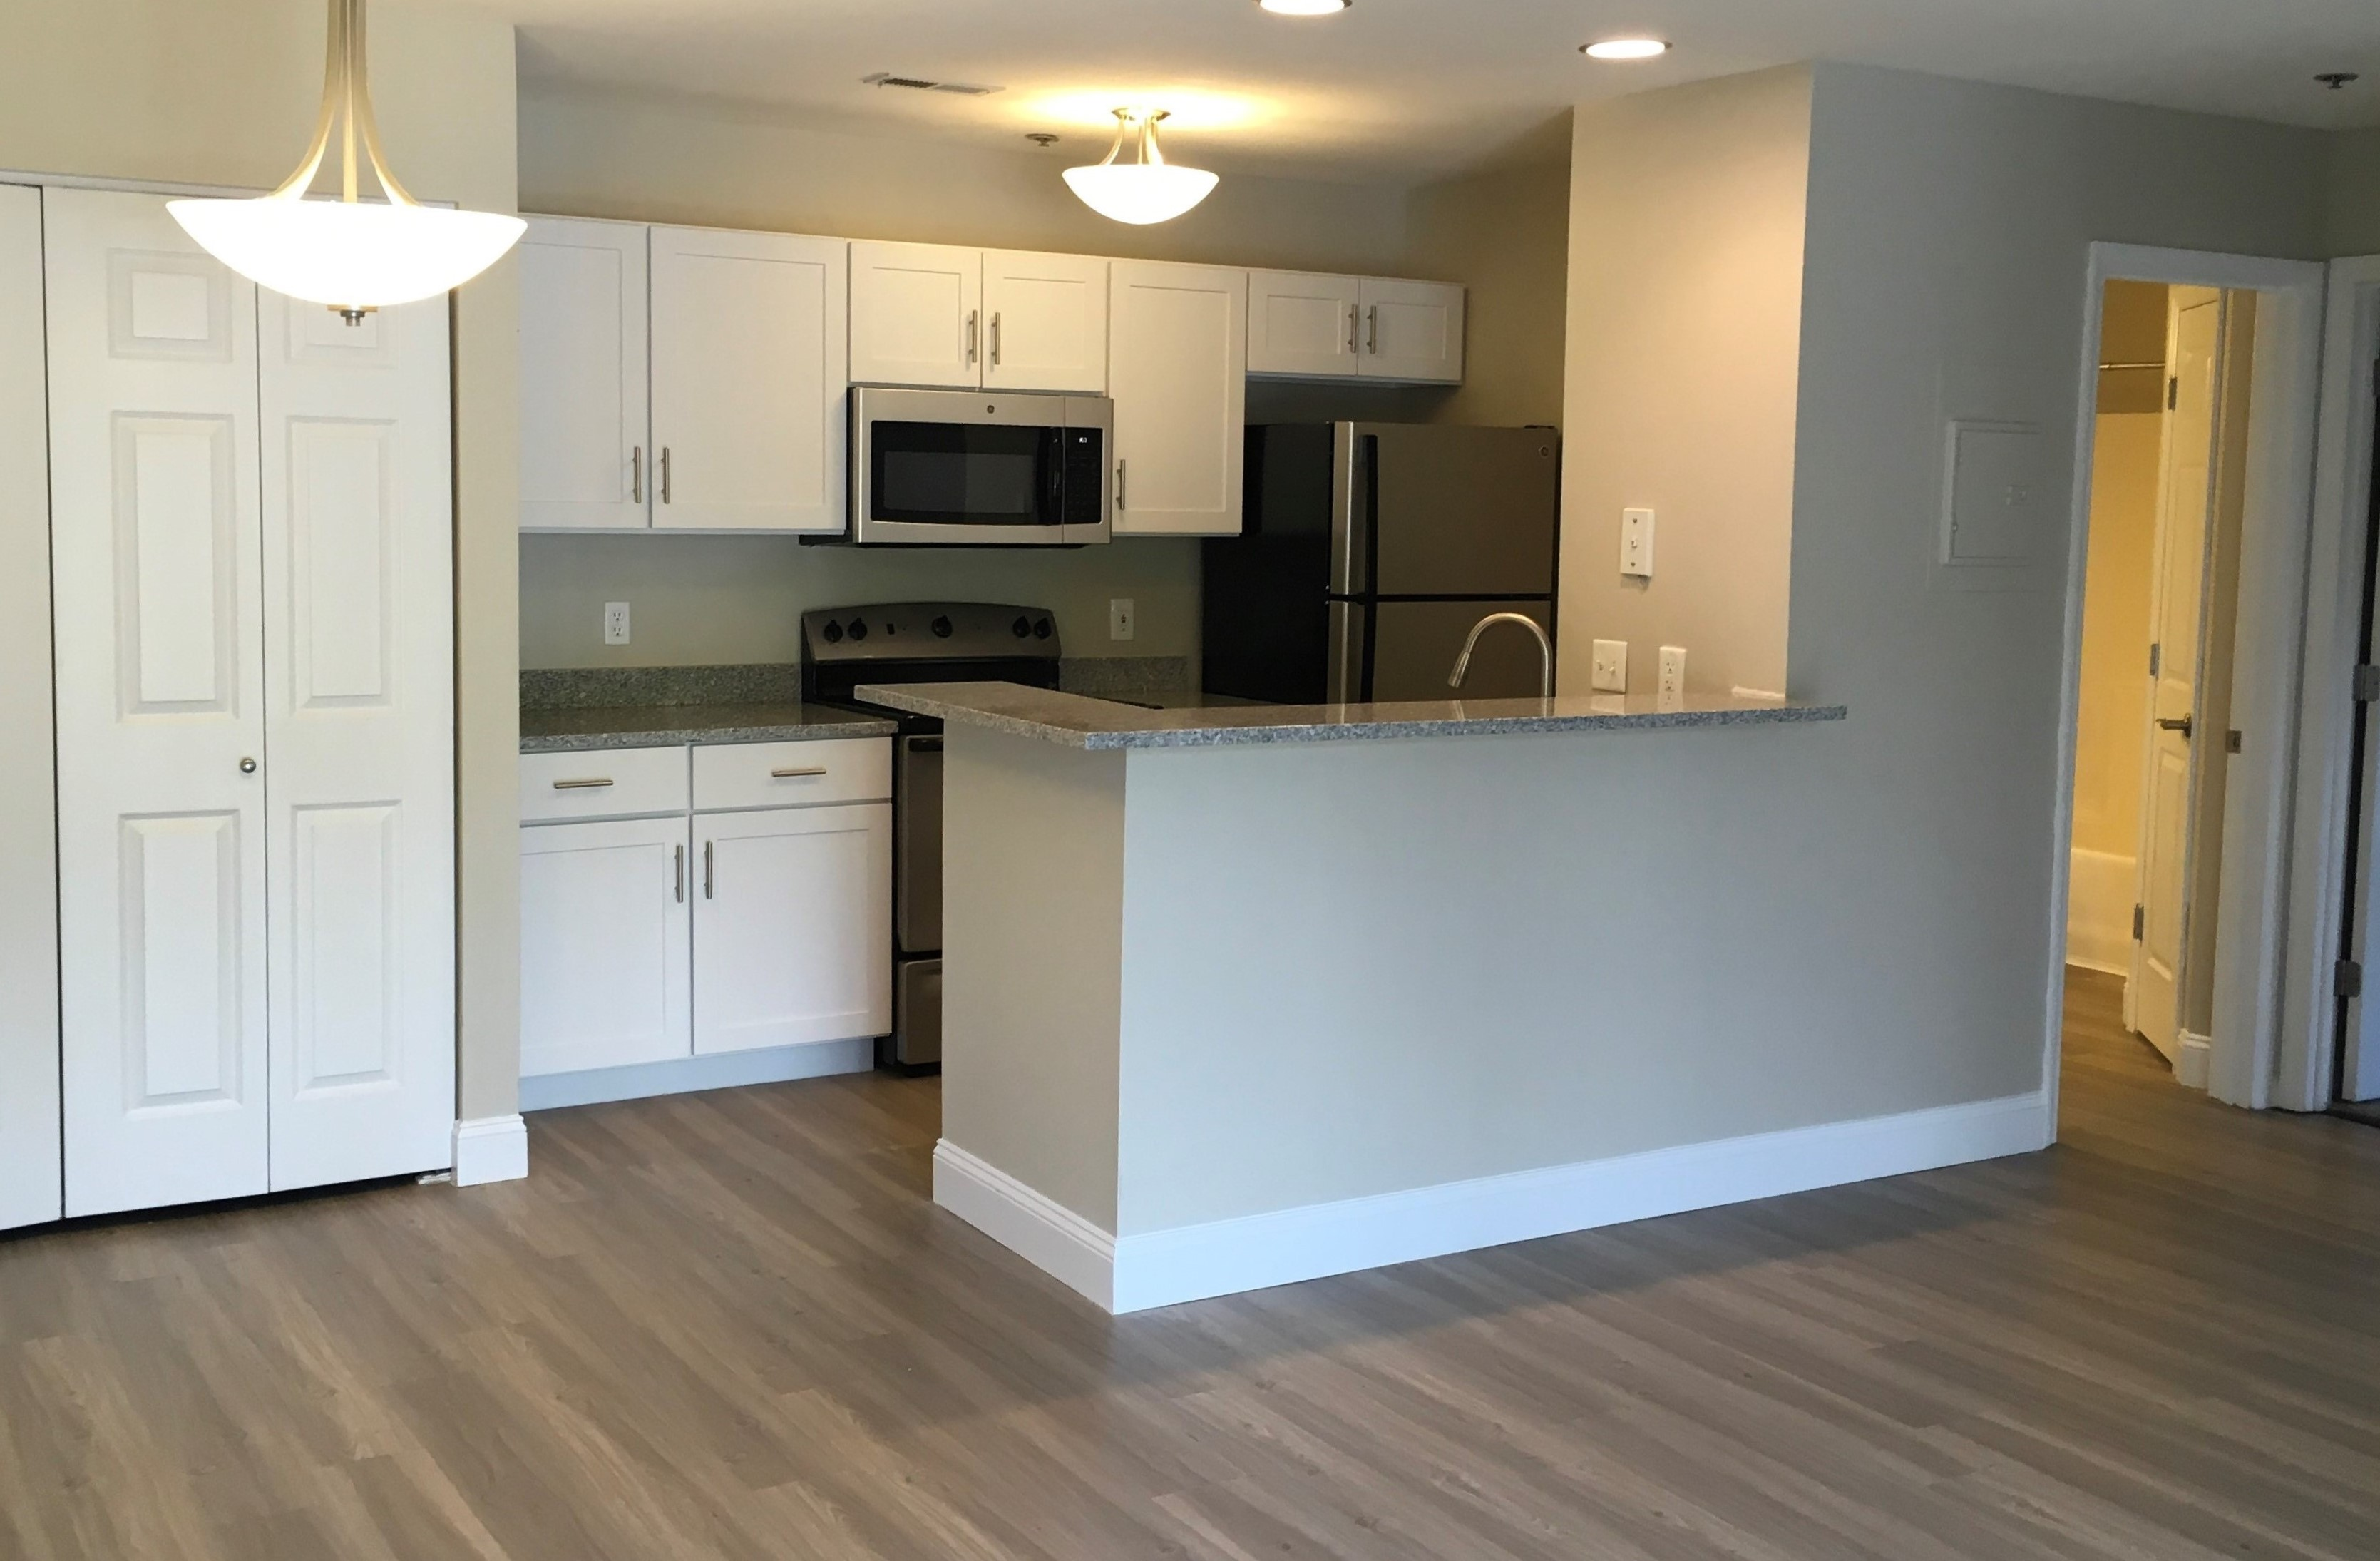 Deluxe Kitchen with white cabinets and granite counters